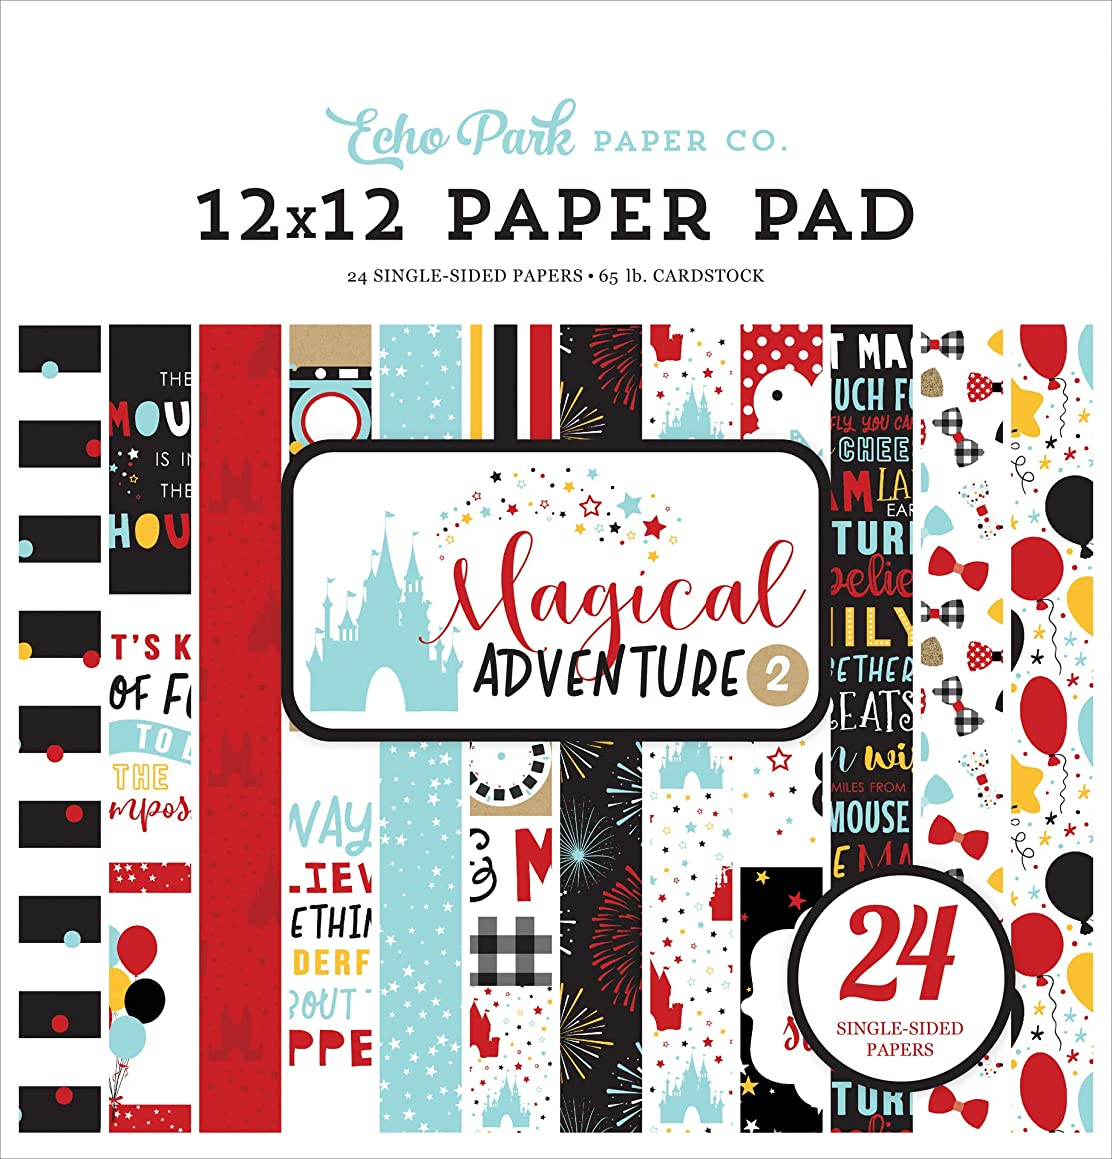 Echo Park Paper Company MAG177030 Magical Adventure 2 12X12 Pad Paper Black, red, Yellow, Teal, Kraft